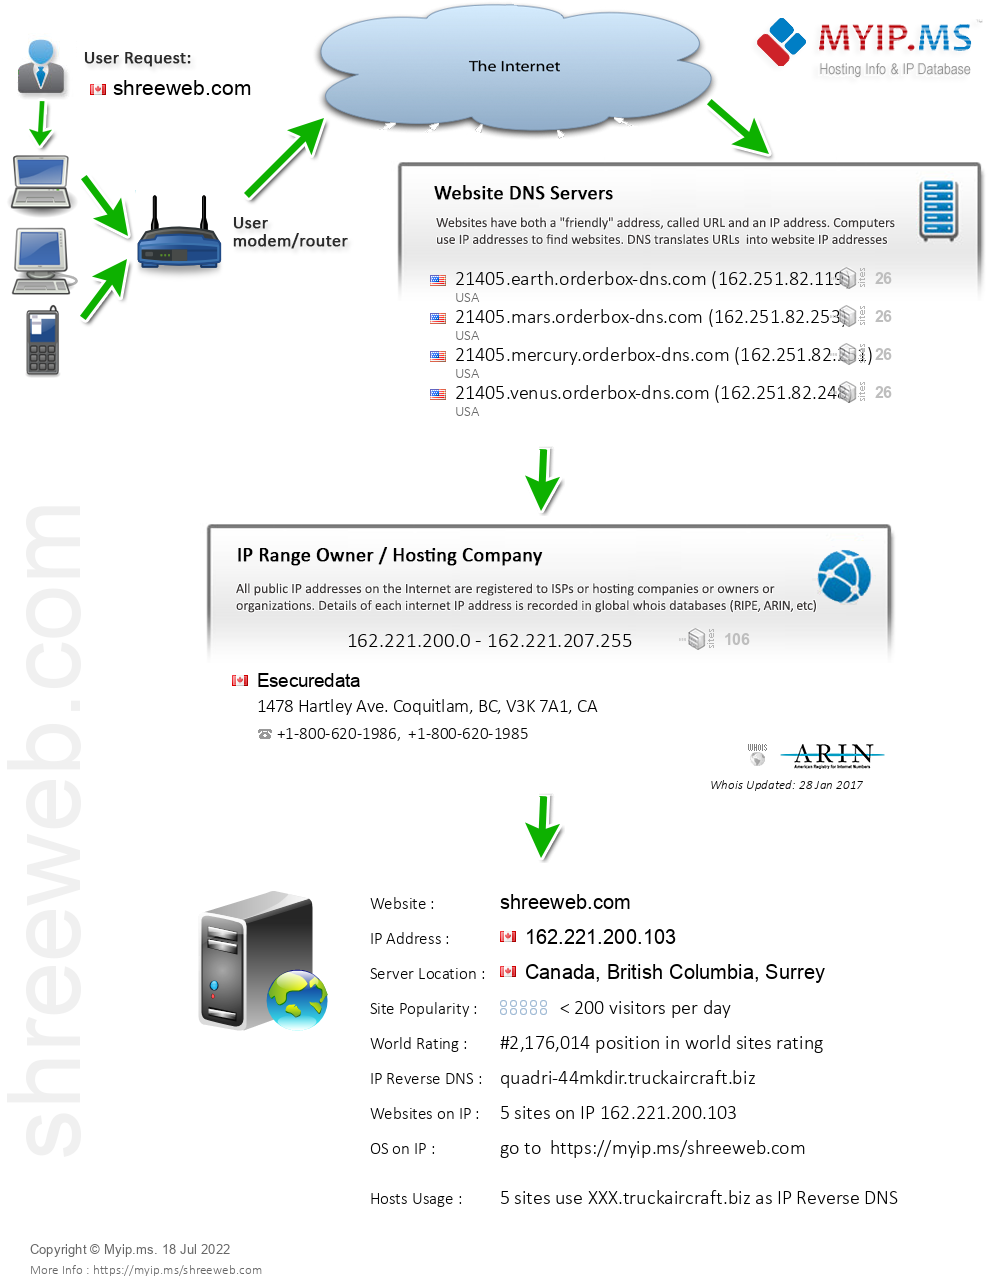 Shreeweb.com - Website Hosting Visual IP Diagram